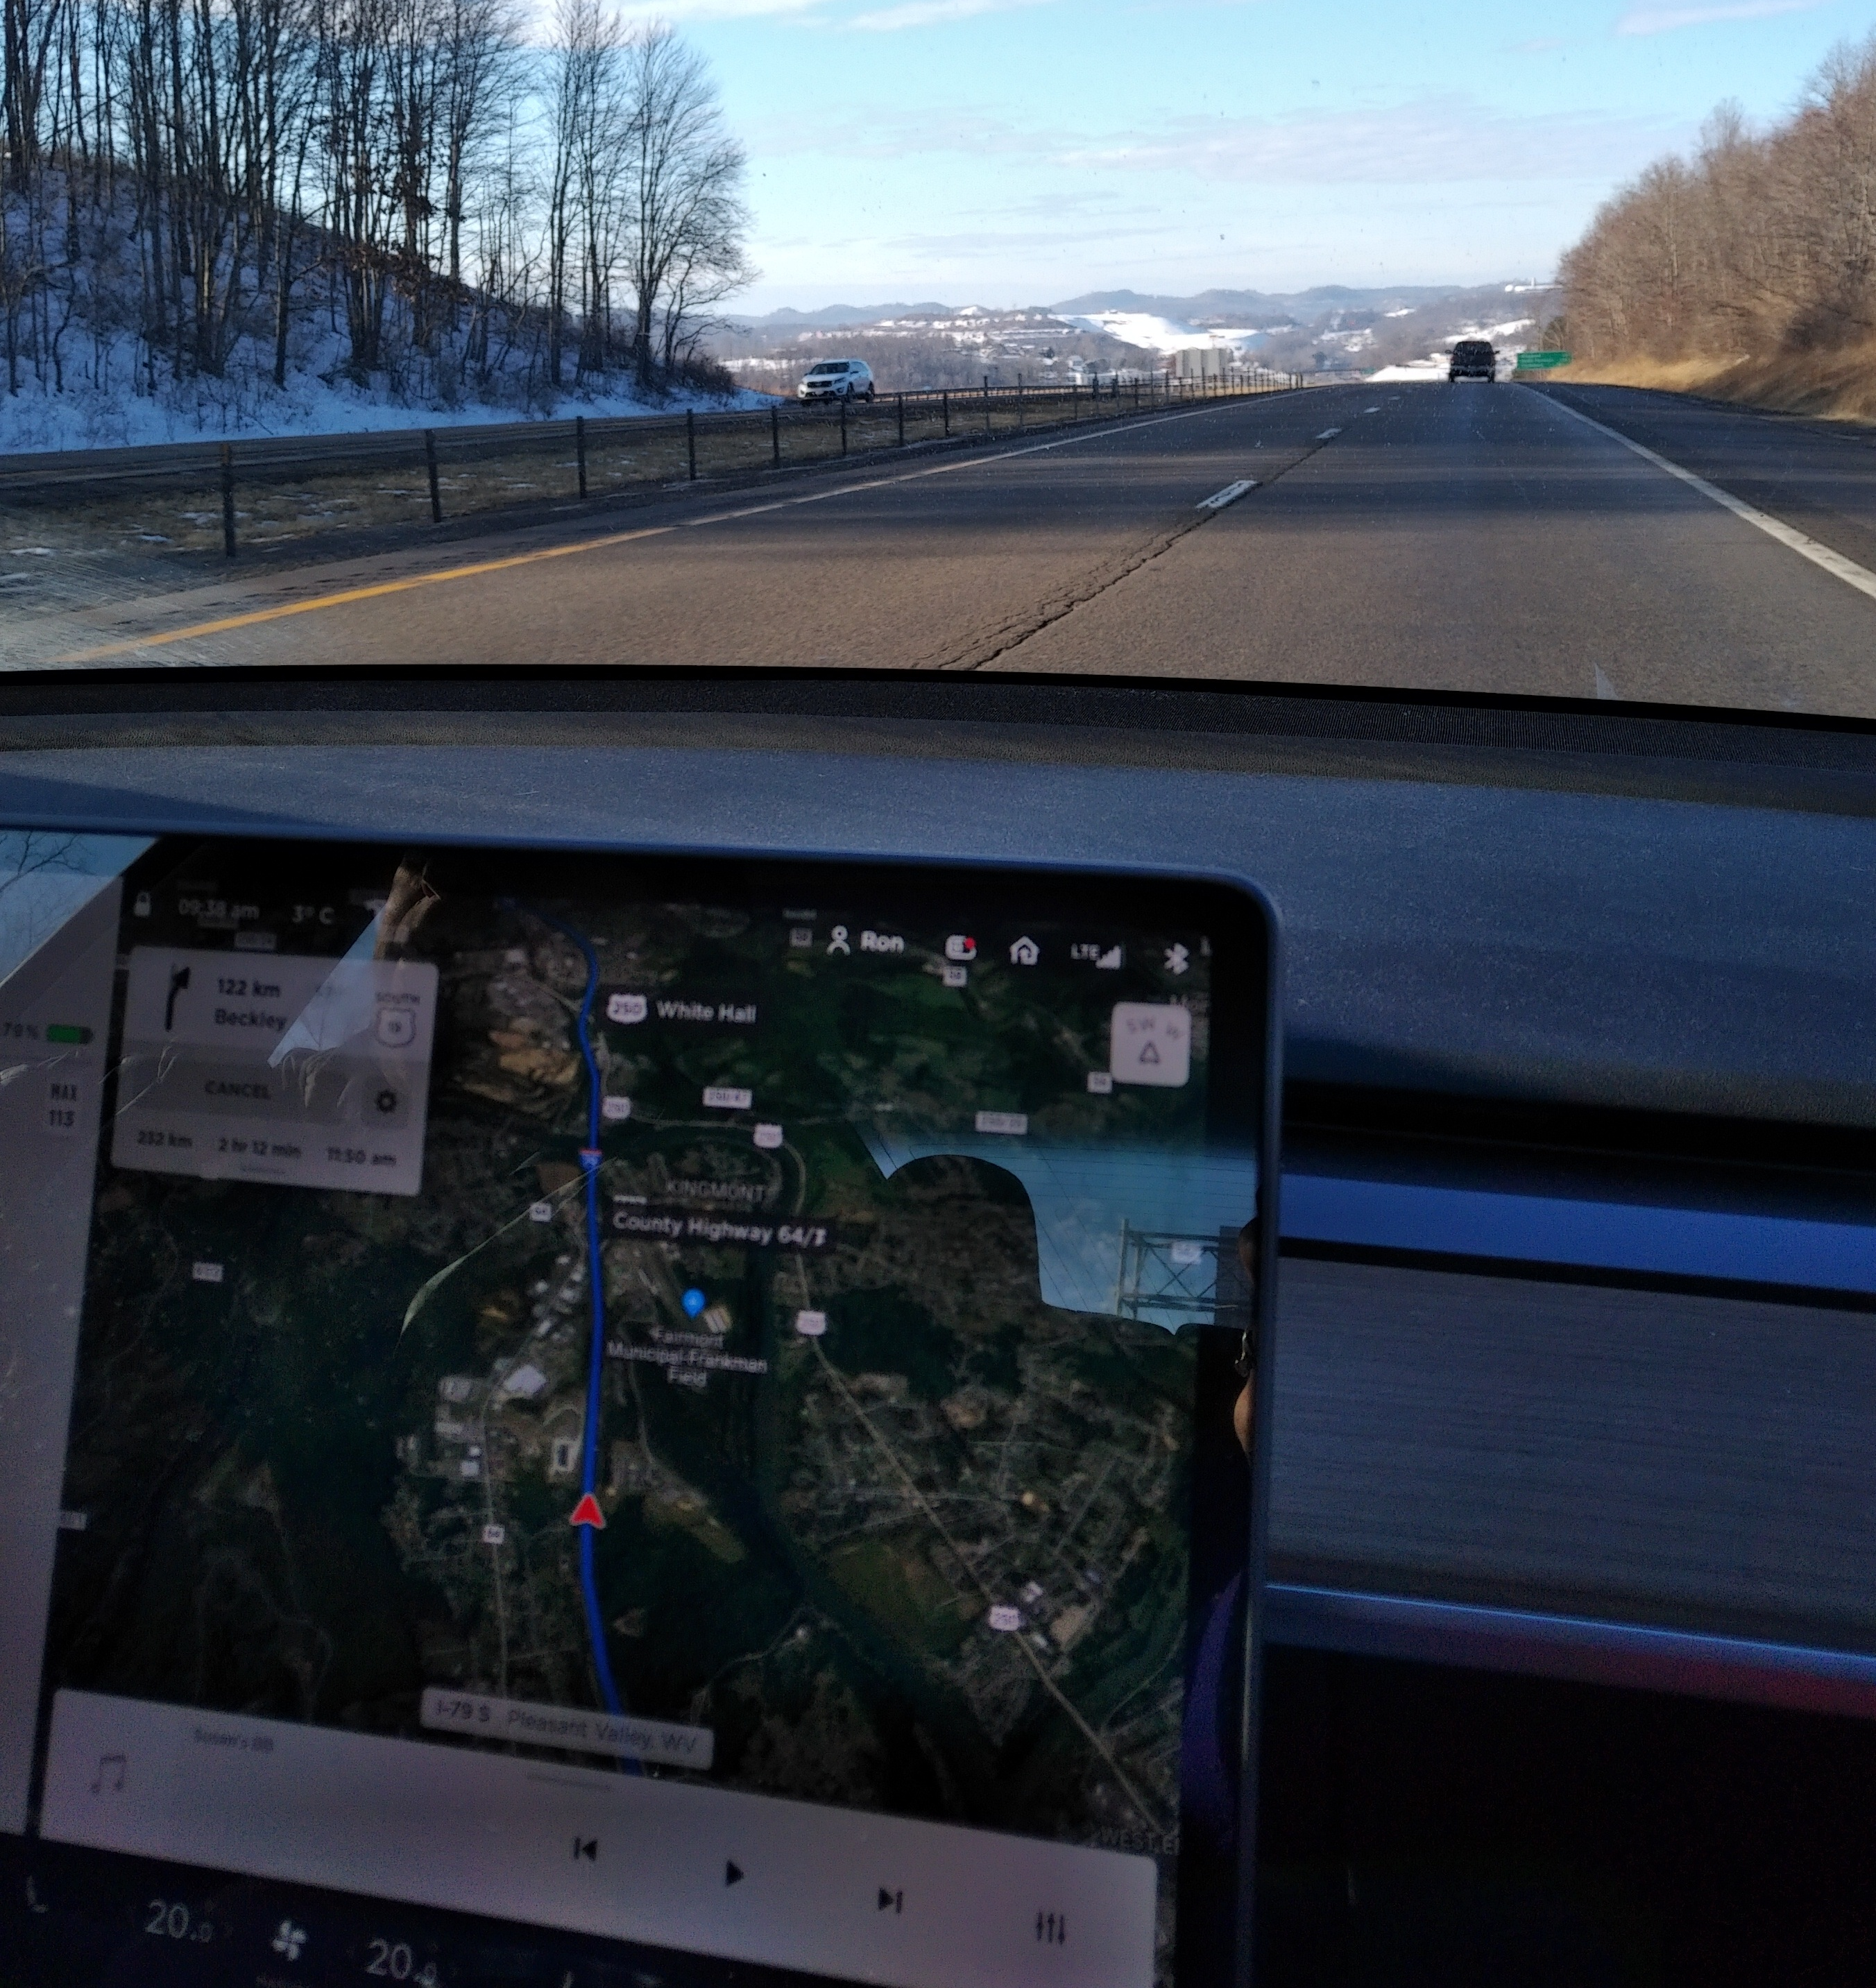 Tesla navigation screen with real time satellite image